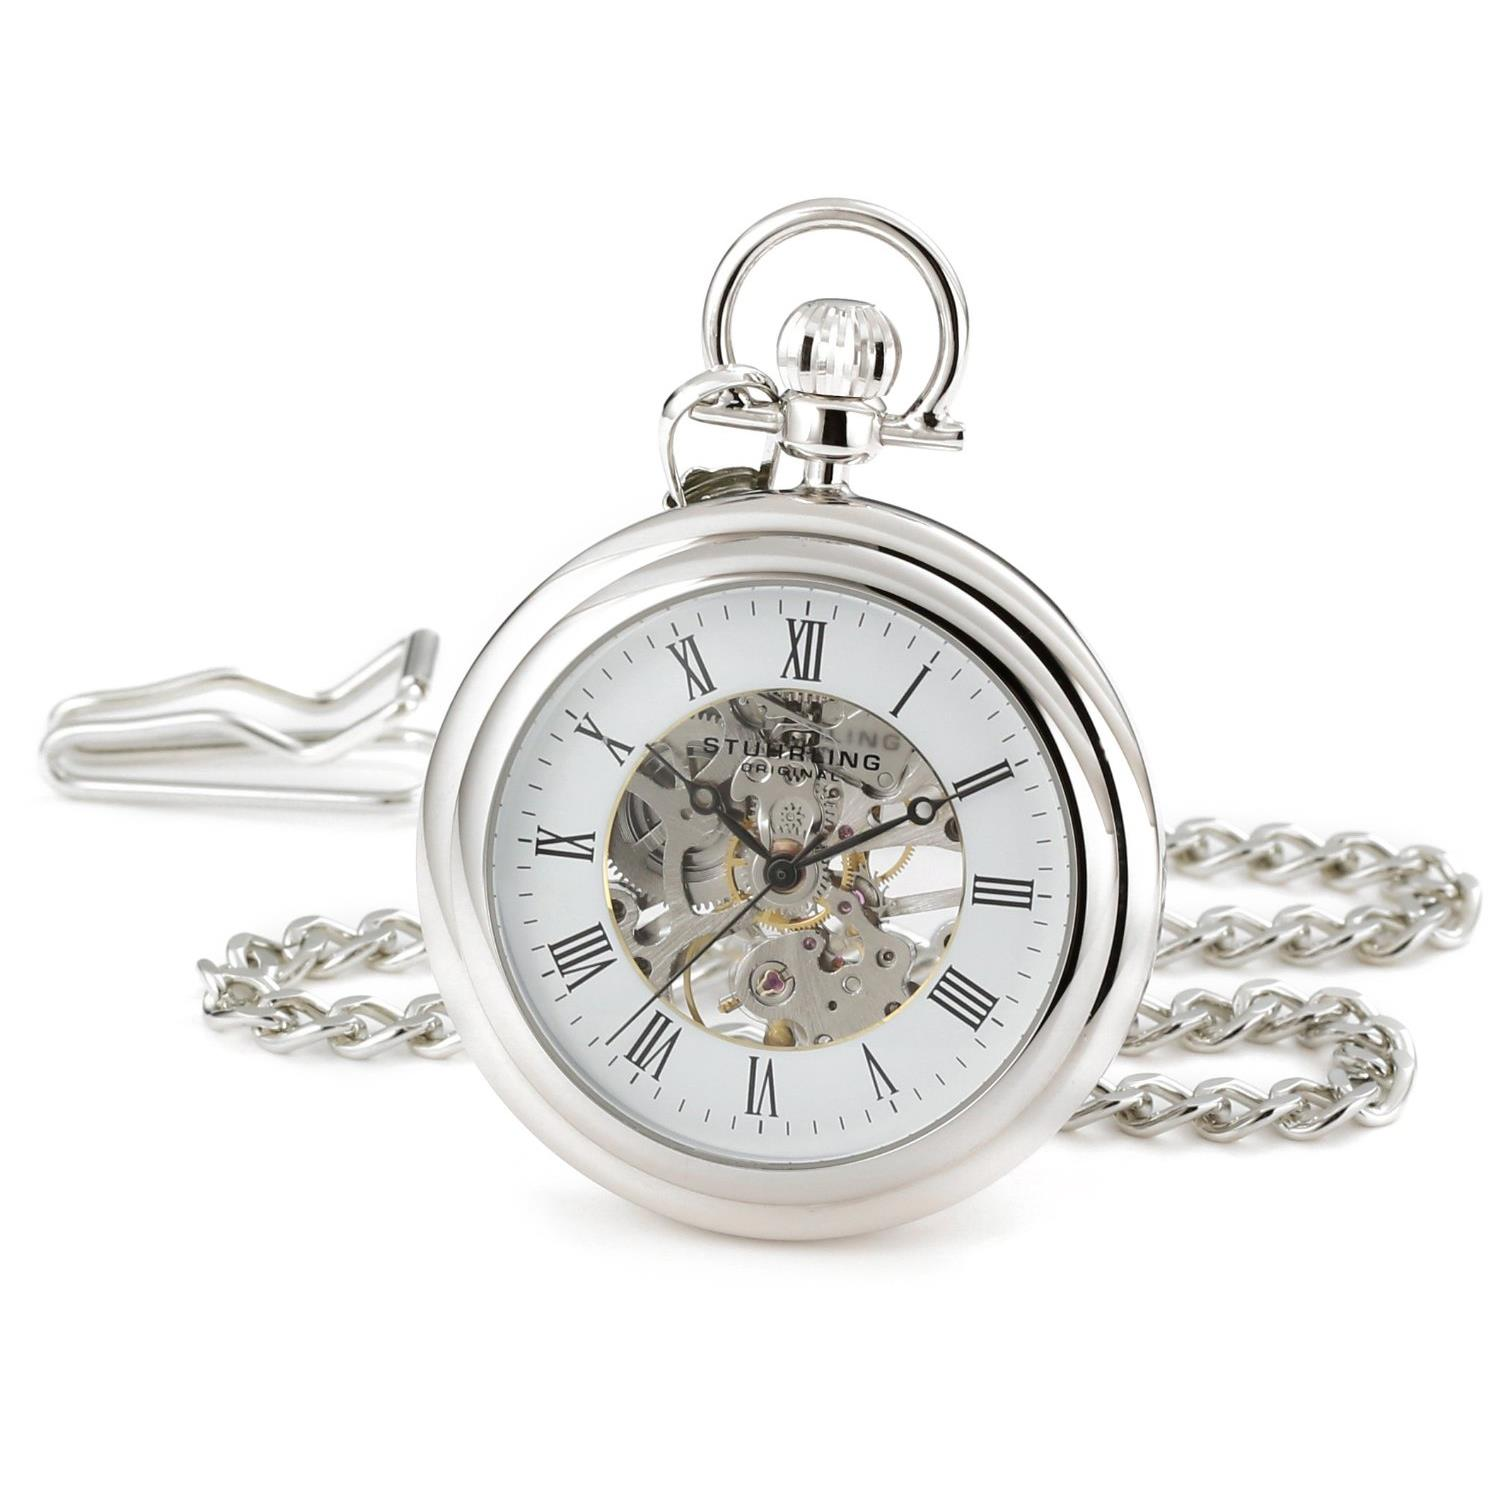 Stuhrling 6053 33113 Vintage Stainless Steel Mechanical Silver Mens Pocket Watch